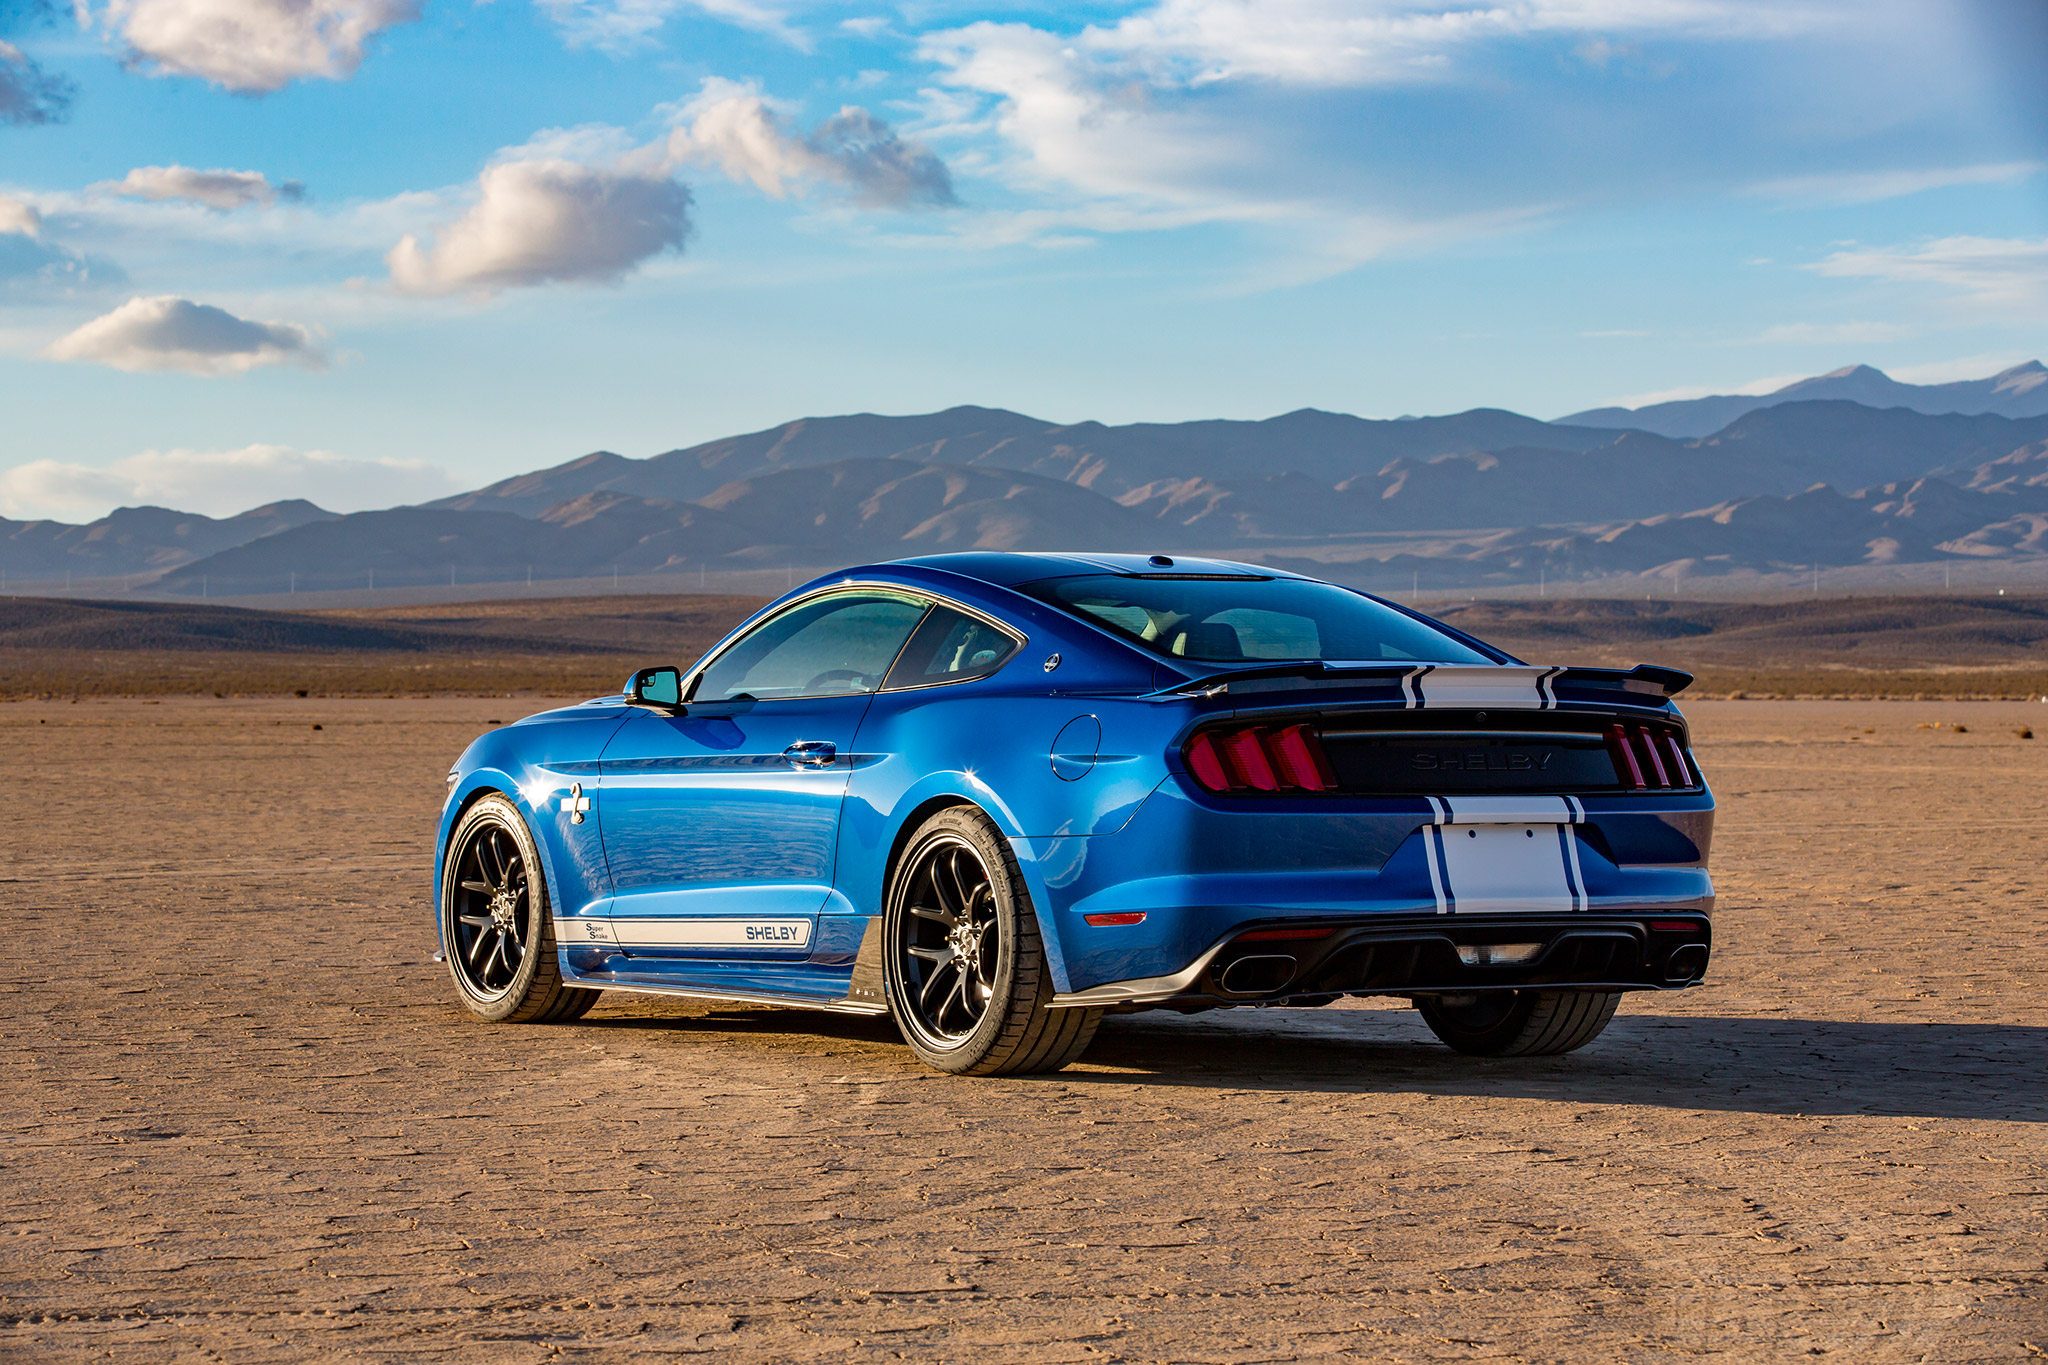 ford and shelby celebrate 50th anniversary with a 750hp 2017 mustang super snake moto networks. Black Bedroom Furniture Sets. Home Design Ideas